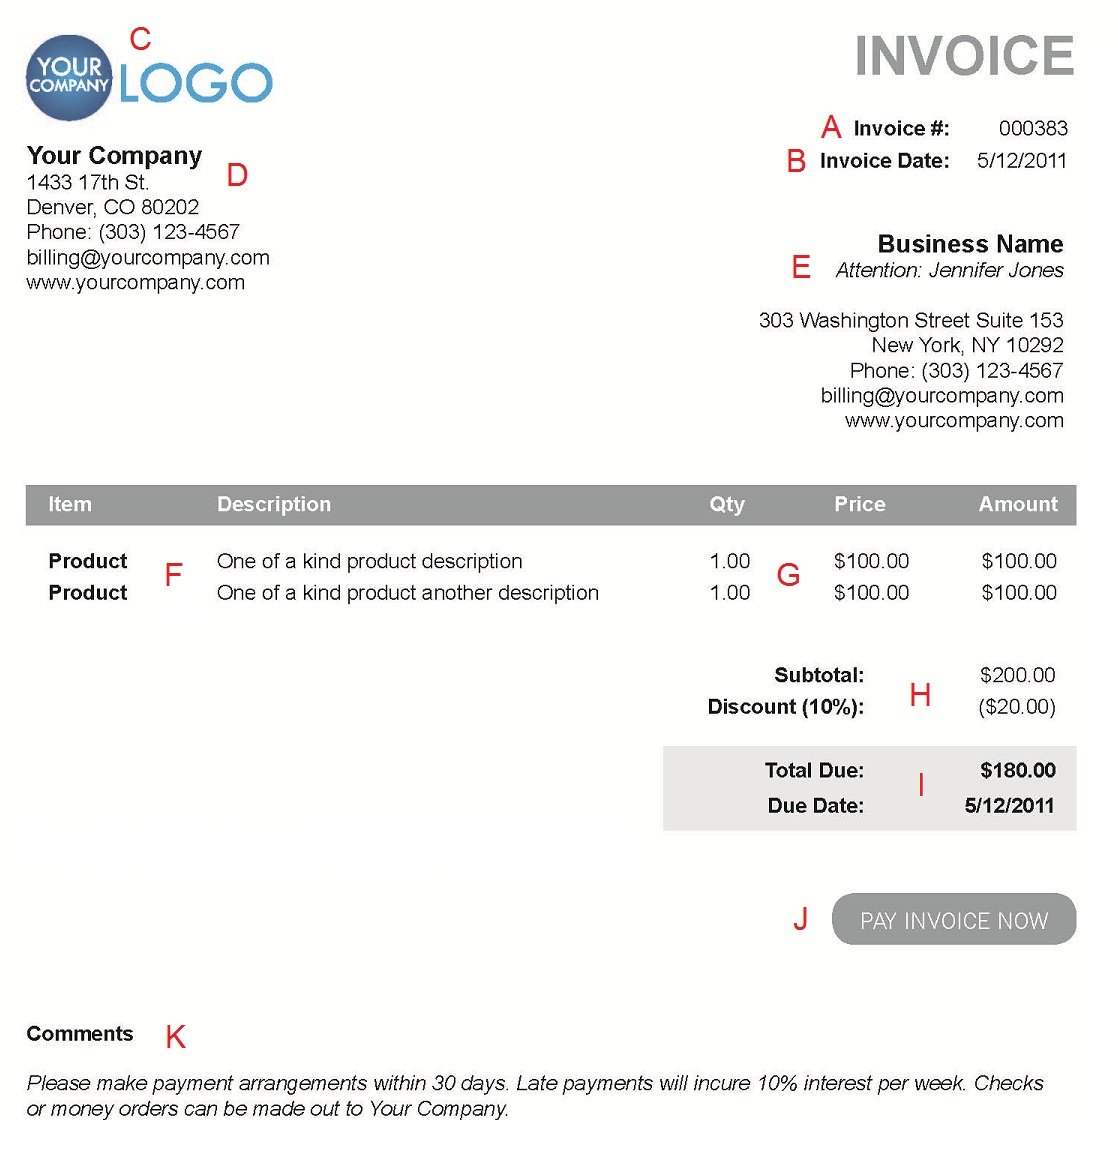 Occupyhistoryus  Outstanding The  Different Sections Of An Electronic Payment Invoice With Engaging A  With Astonishing Best Invoicing Software For Freelancers Also Invoice Audit In Addition Invoice For Work And Work Invoice Template Free As Well As Examples Of Invoices For Services Additionally Invoice Tax From Paysimplecom With Occupyhistoryus  Engaging The  Different Sections Of An Electronic Payment Invoice With Astonishing A  And Outstanding Best Invoicing Software For Freelancers Also Invoice Audit In Addition Invoice For Work From Paysimplecom